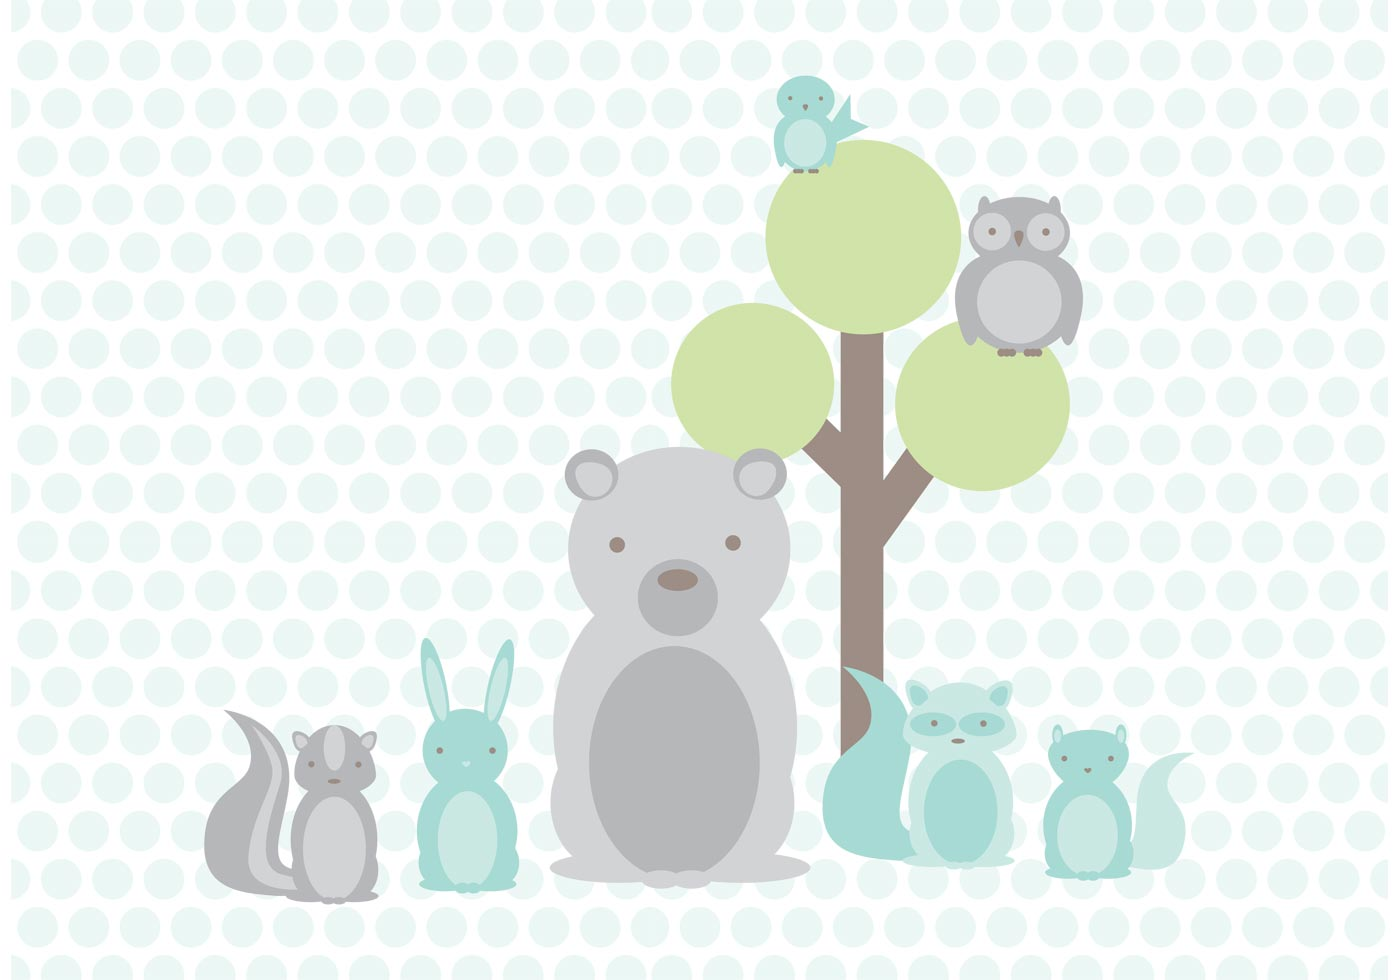 Cute Notepad Wallpaper Baby Woodland Friends Vector Download Free Vectors